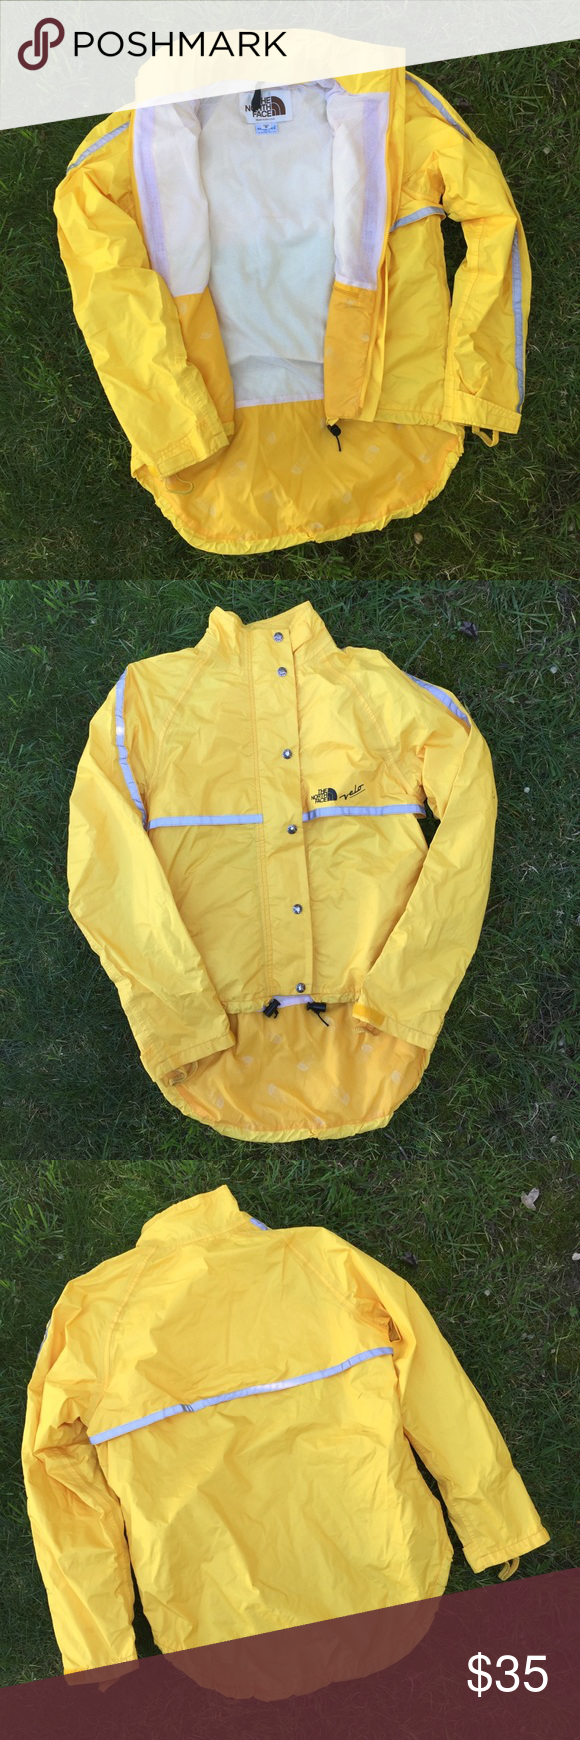 ️THE NORTH FACE yellow cyclist jacket Super fun color! It